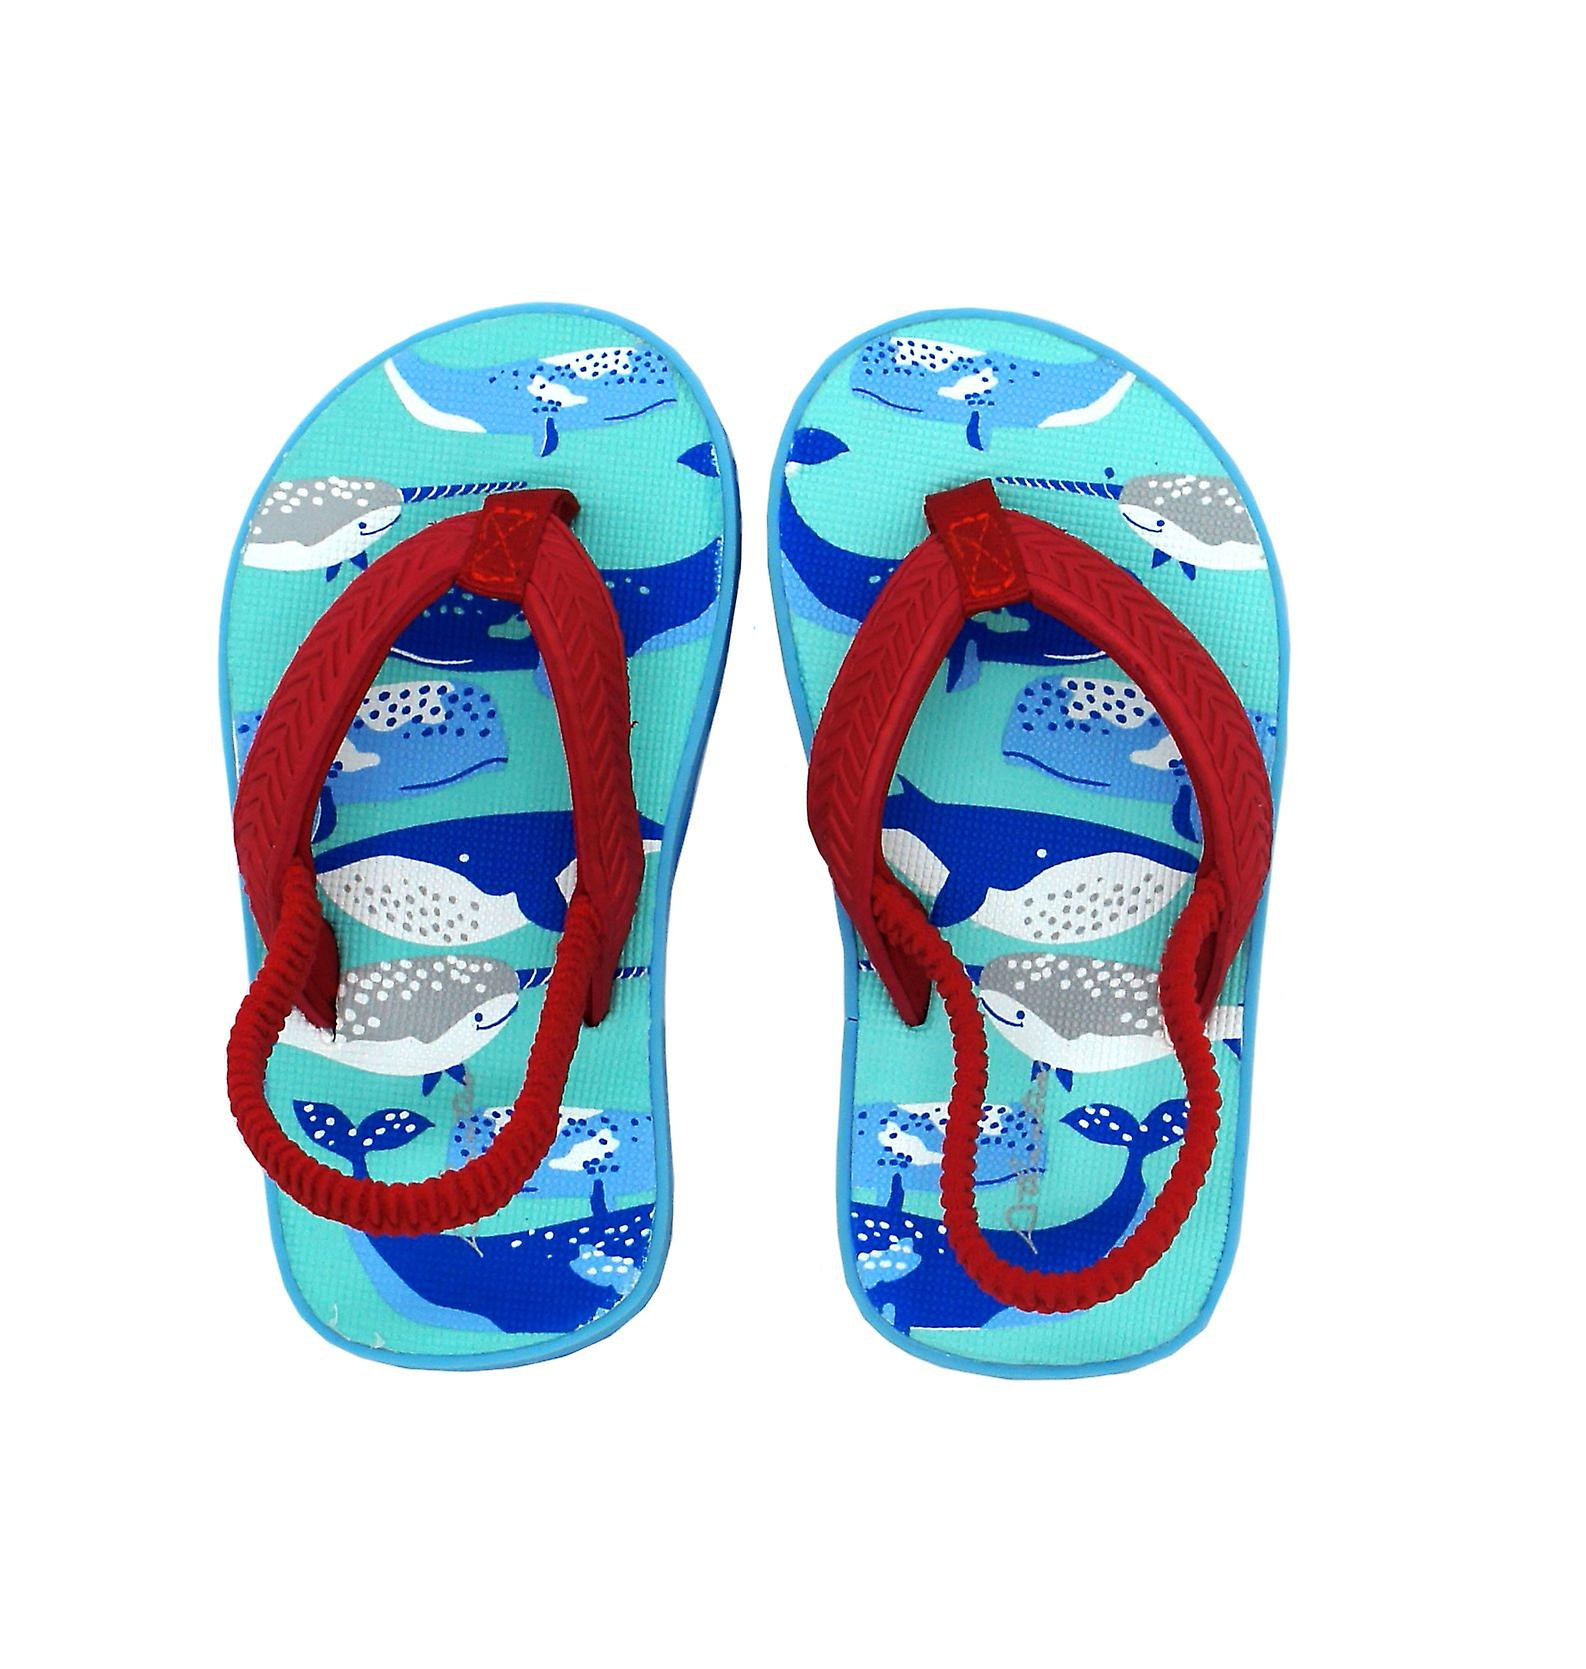 Atlantis Shoes Kids Unisex Girls & Boys Supportive Cushioned Comfortable Sandals Flip Flops Ocean Discovery Red